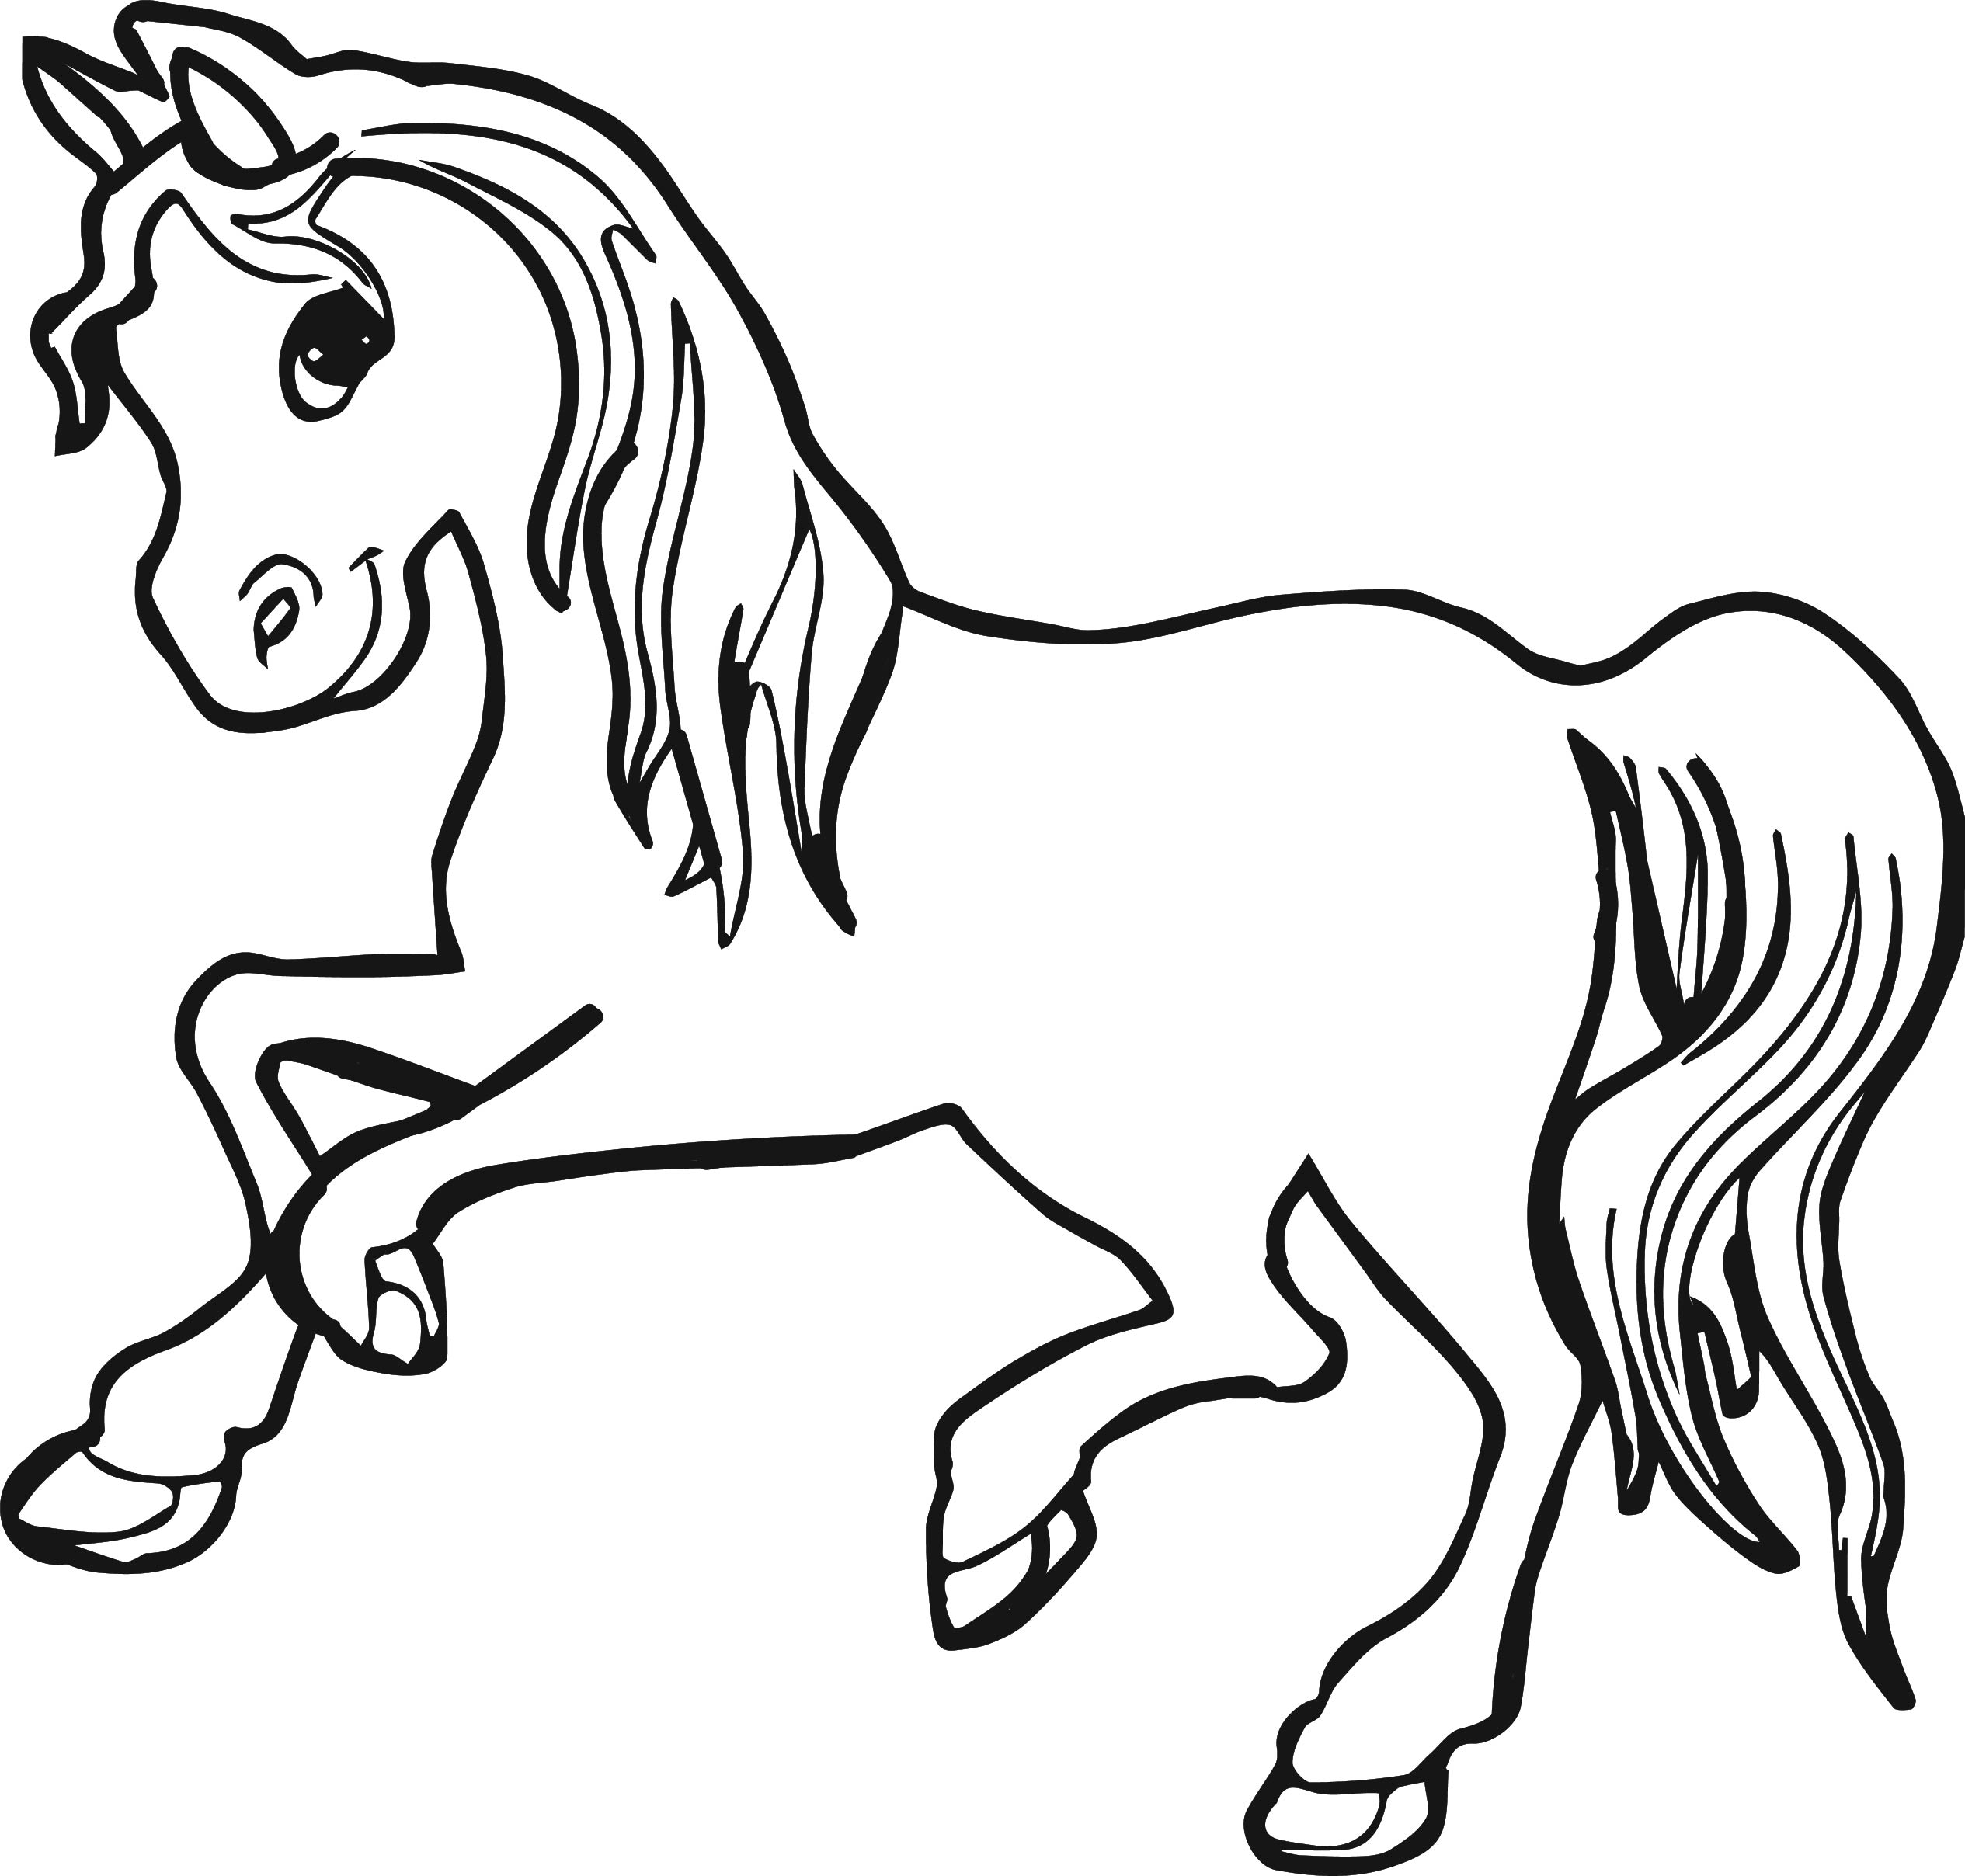 coloring pages of a horse top 55 free printable horse coloring pages online horse a of pages coloring